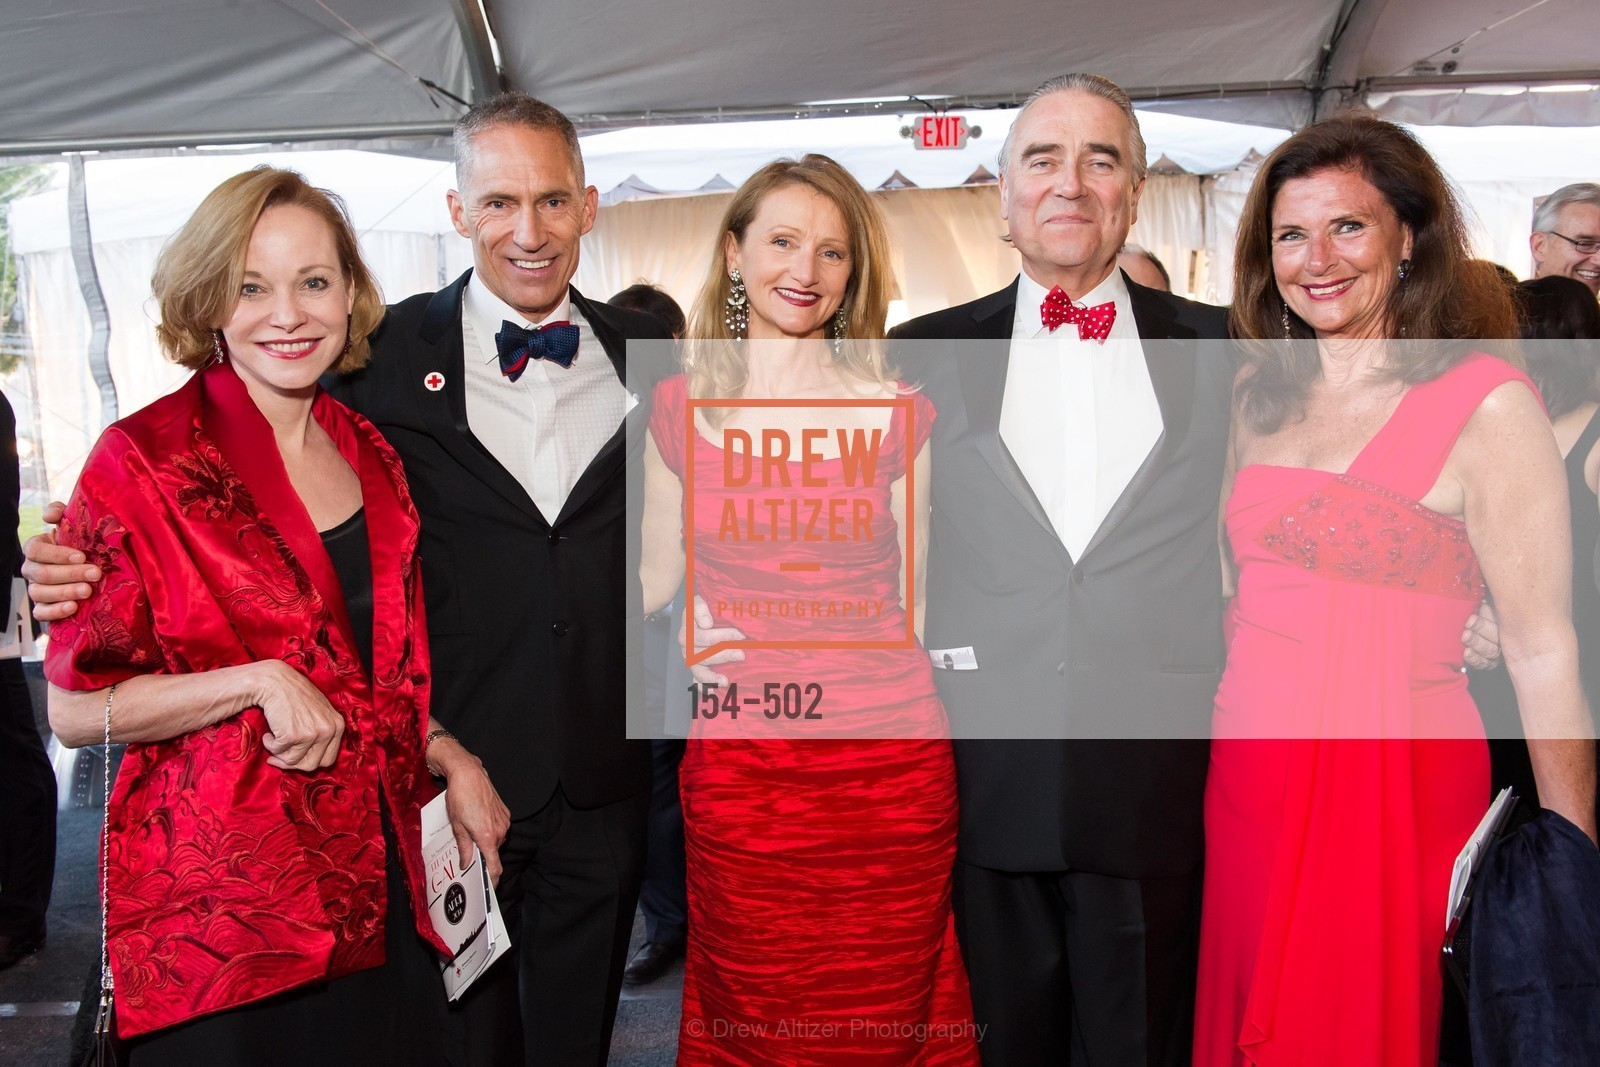 Janice Zakin, Mark Cloutier, Gerlind Rothen, Peter Rothen, Linda Zider, 2014 RED CROSS Gala Honoring Paula Downey as the American Red Cross Bay Area Chapter Humanitarian CEO of the Year, US. Treasure Island (The Great Lawn), April 5th, 2014,Drew Altizer, Drew Altizer Photography, full-service agency, private events, San Francisco photographer, photographer california